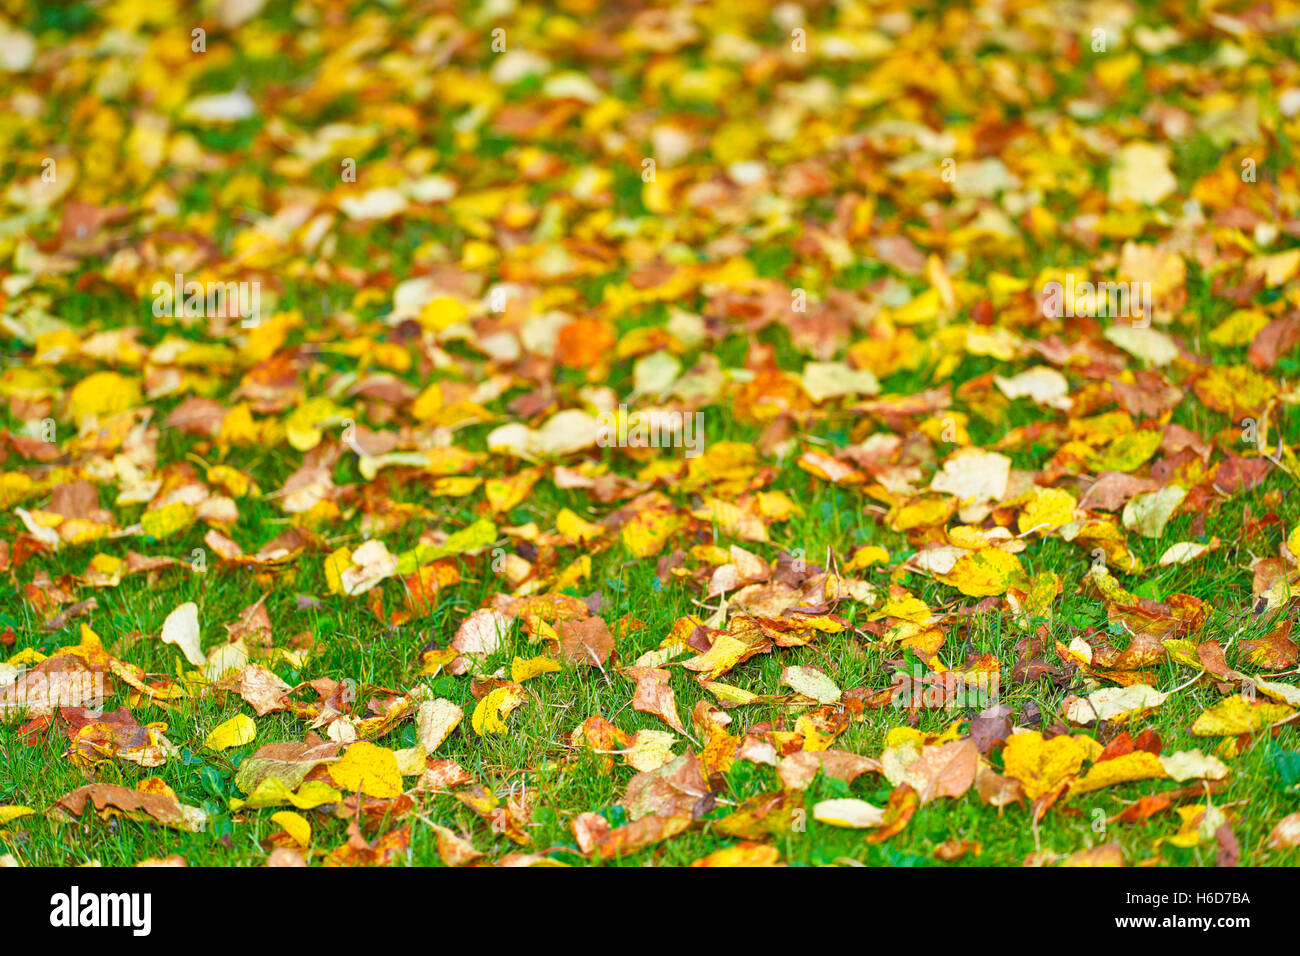 Leaves fallen on grass. Fall. Autumn - Stock Image